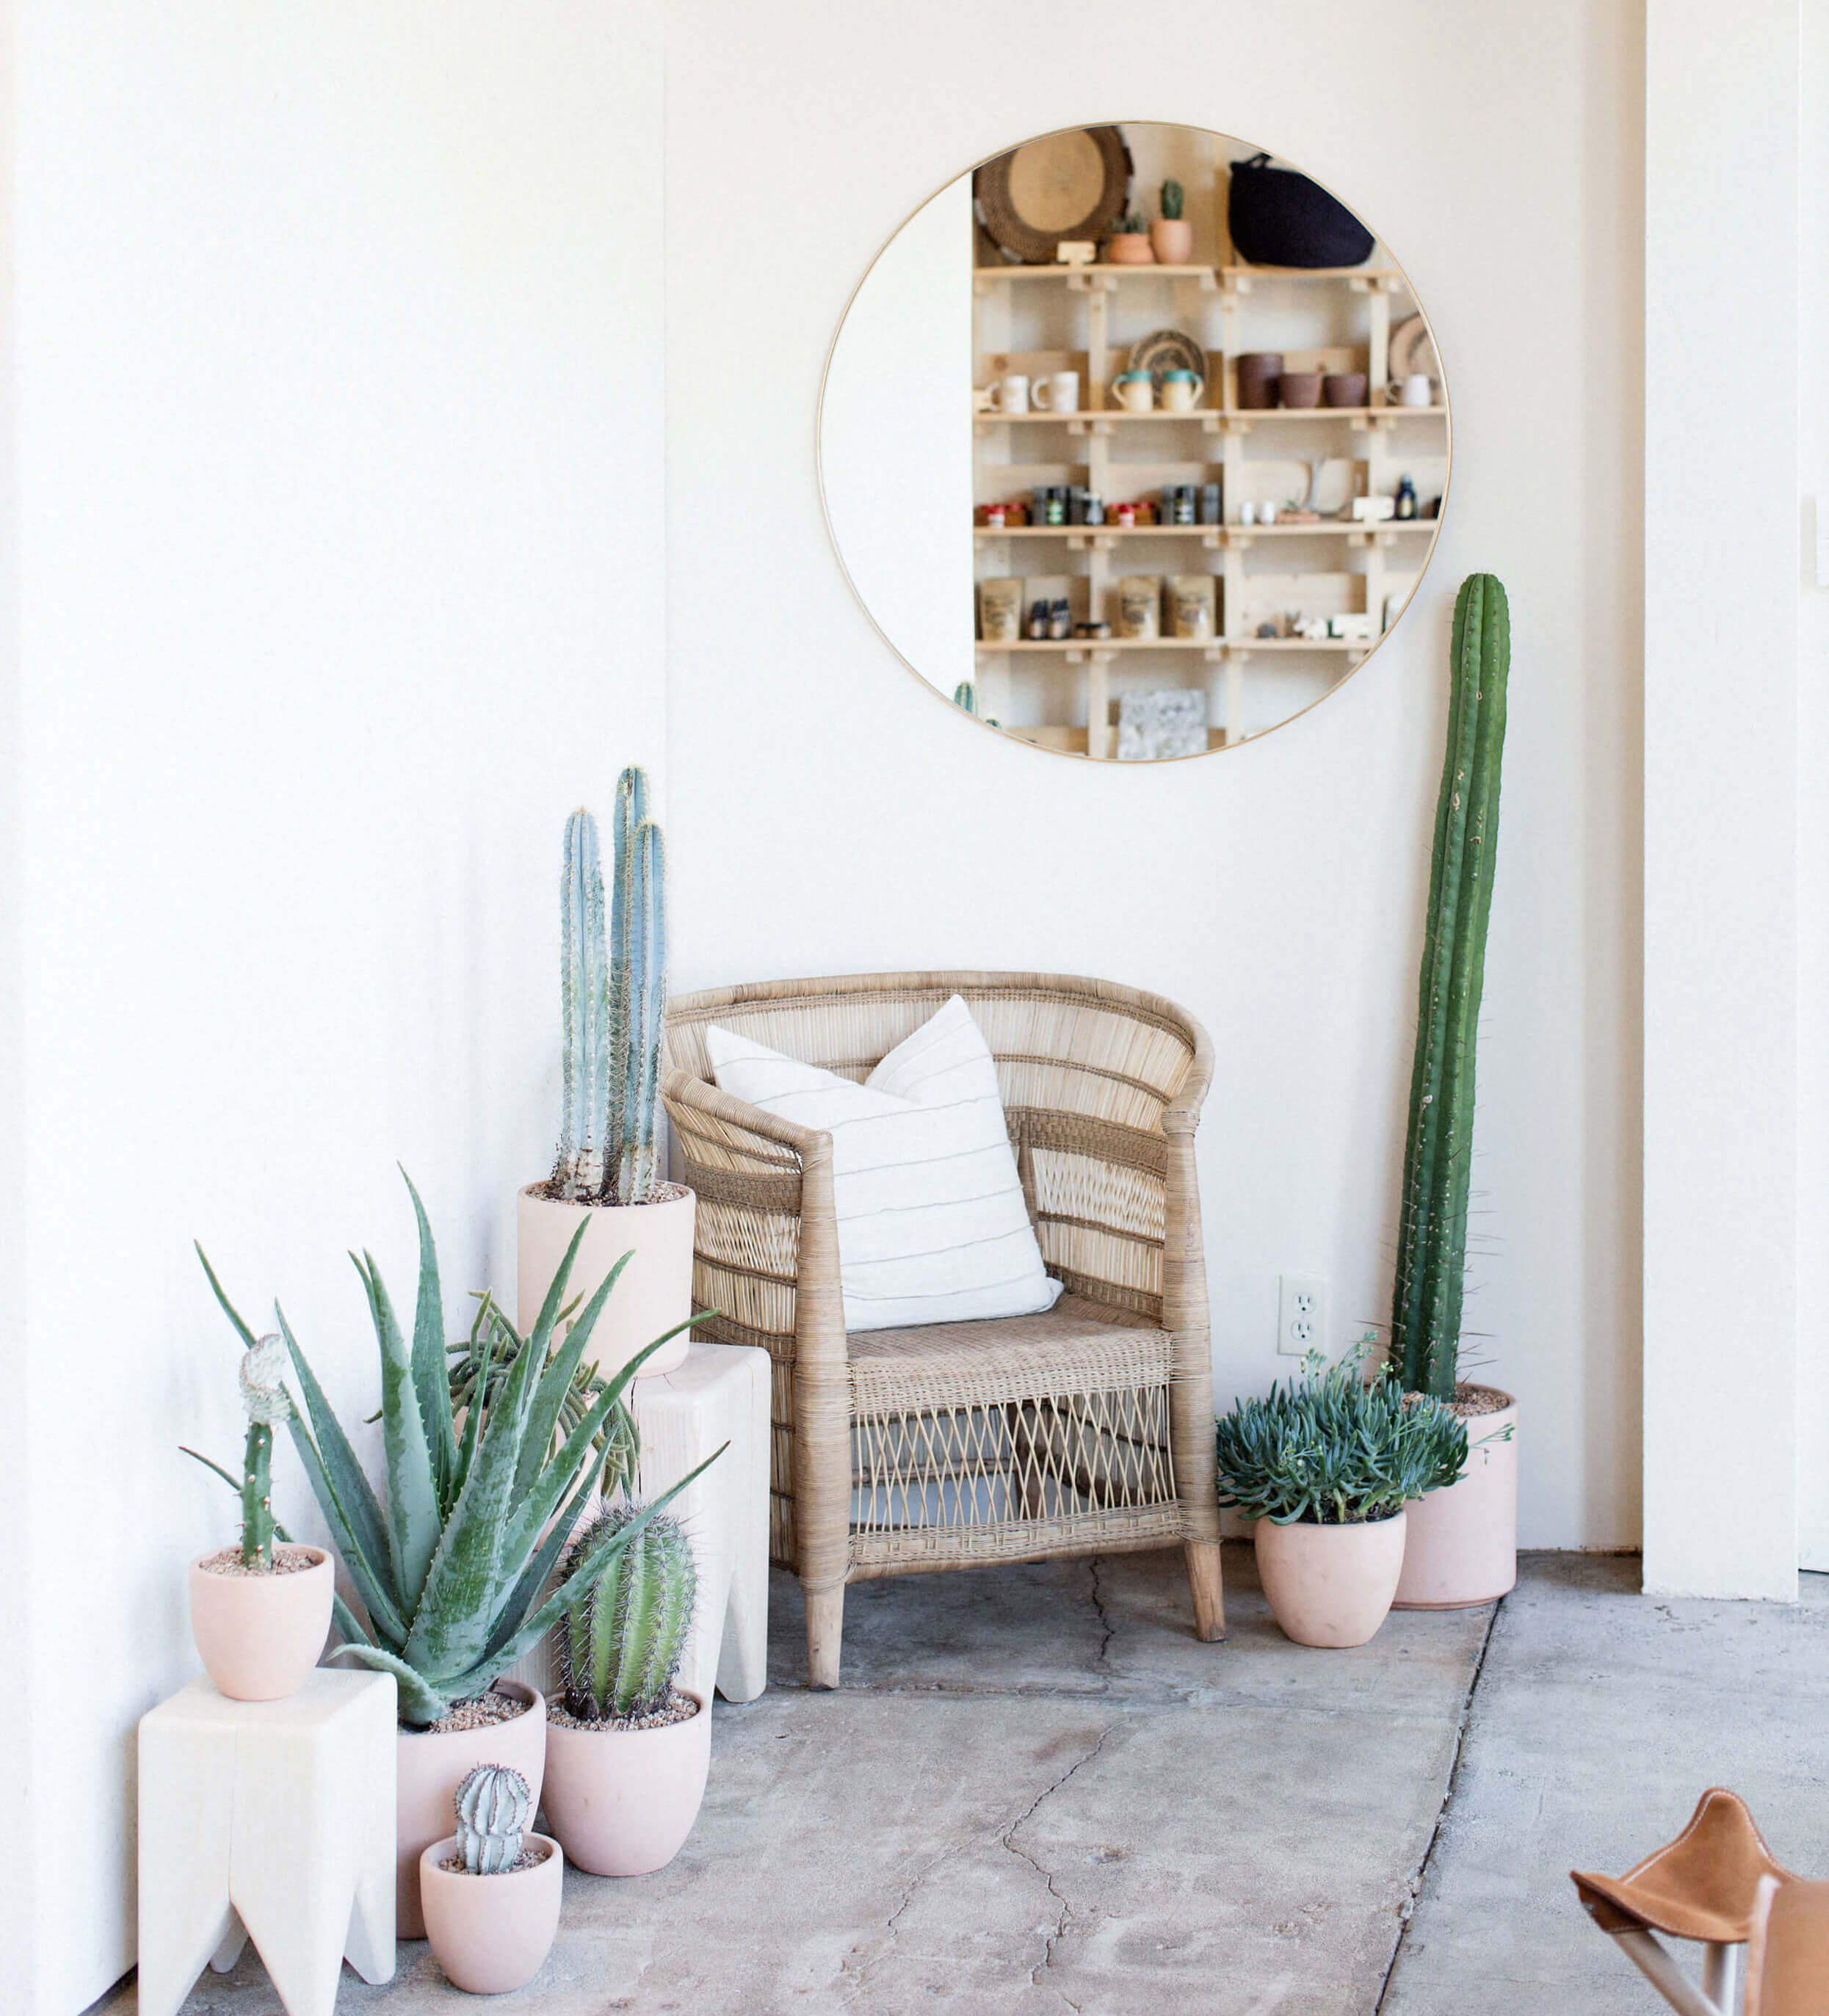 midland shop in culver city home inspiration california decor rh pinterest com